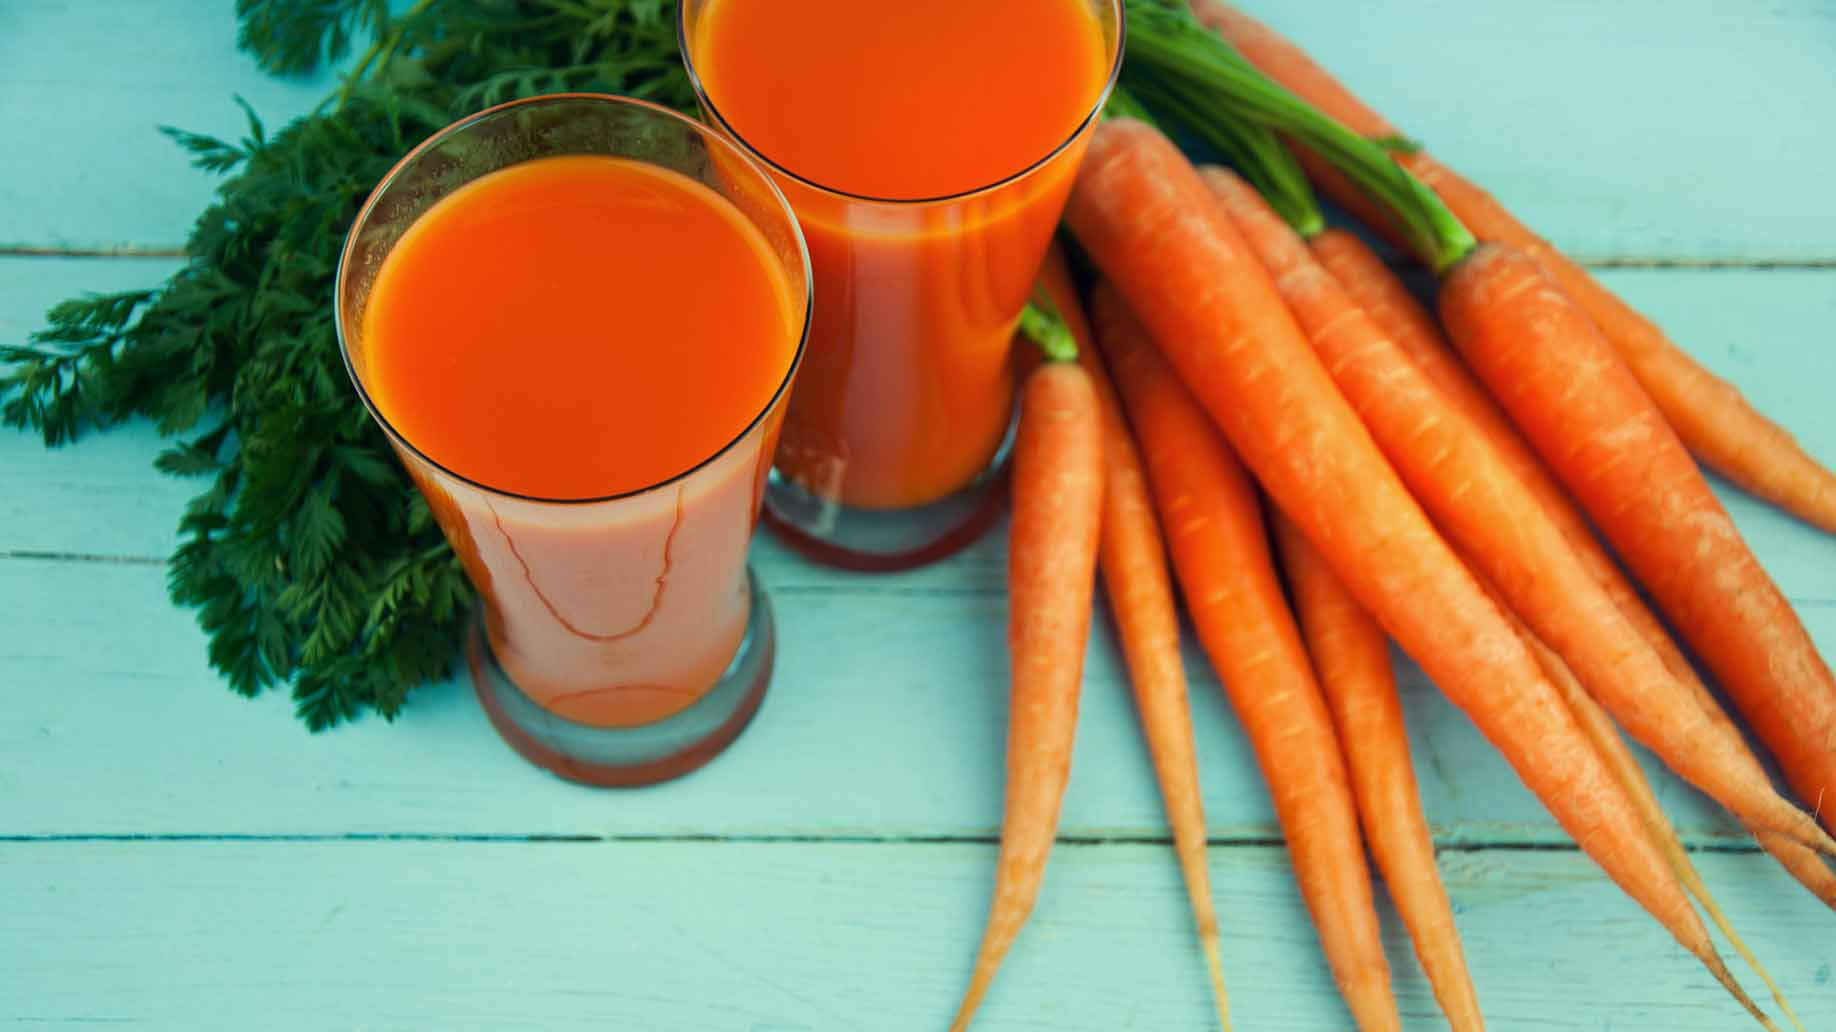 carrot juice fresh carrots green leaves detox liver diy cleanse remove toxins naturally